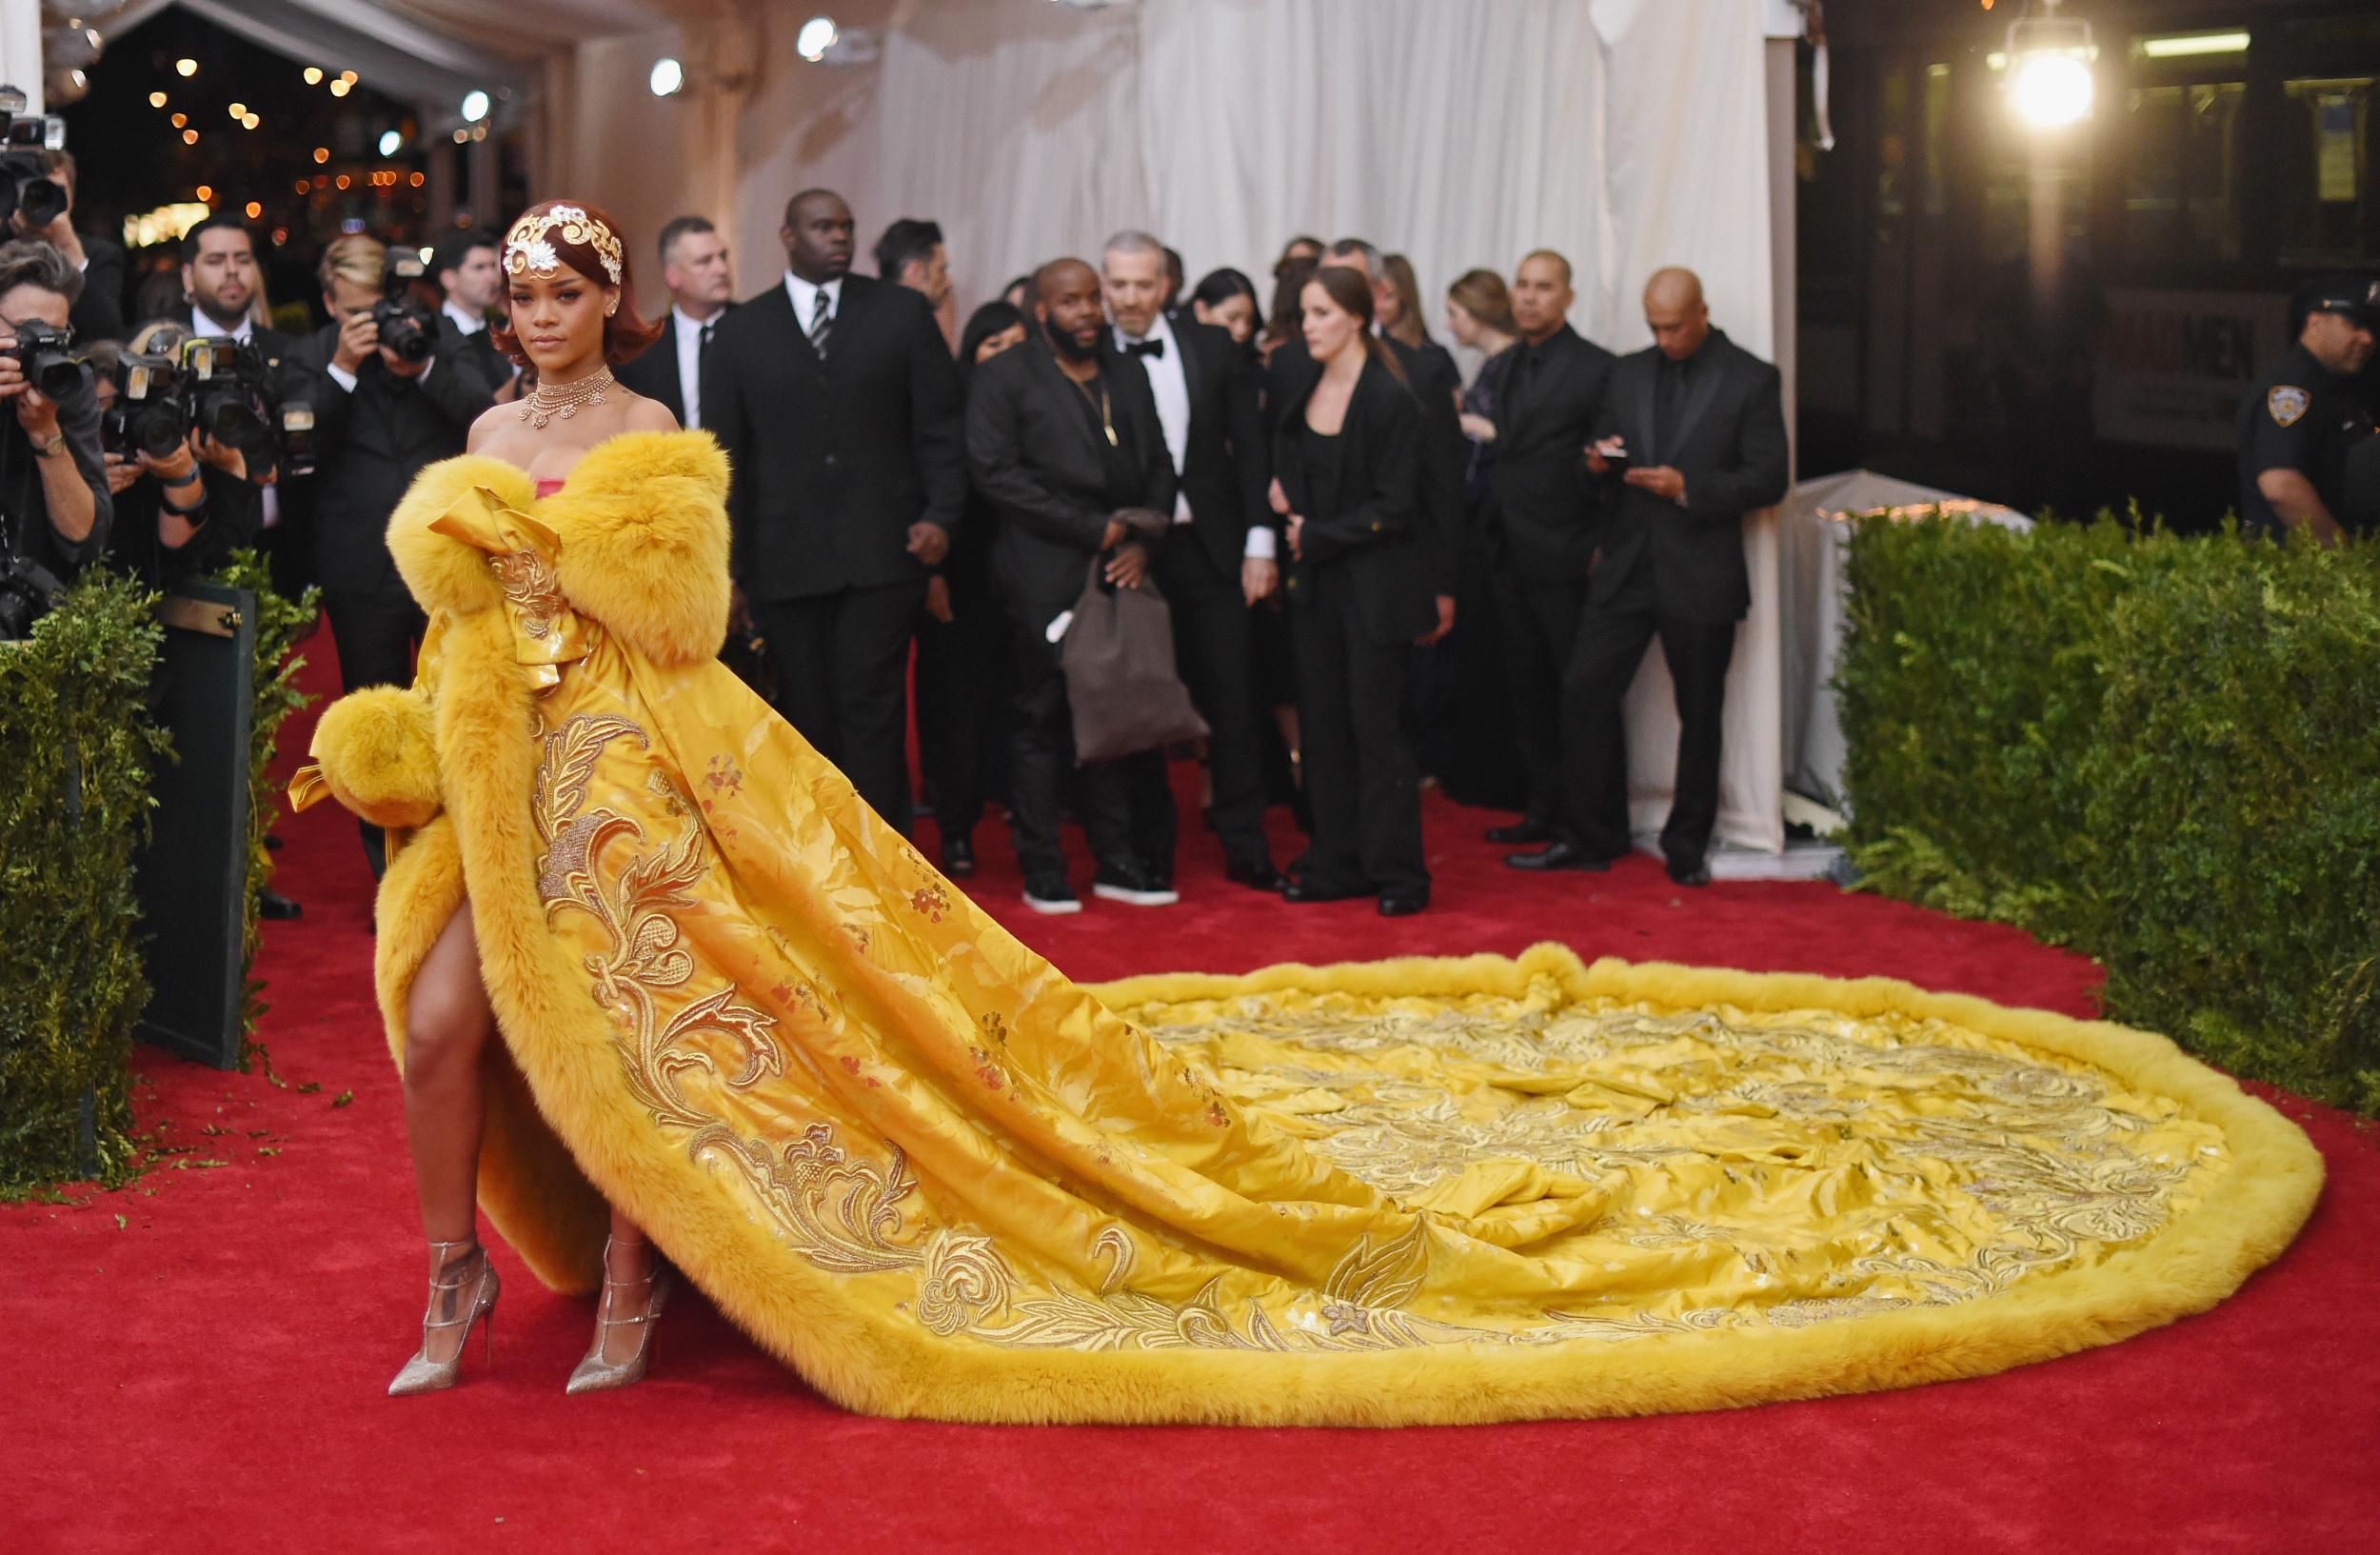 6 - Rihanna's Met Gala dress, Guo Pei, 2015